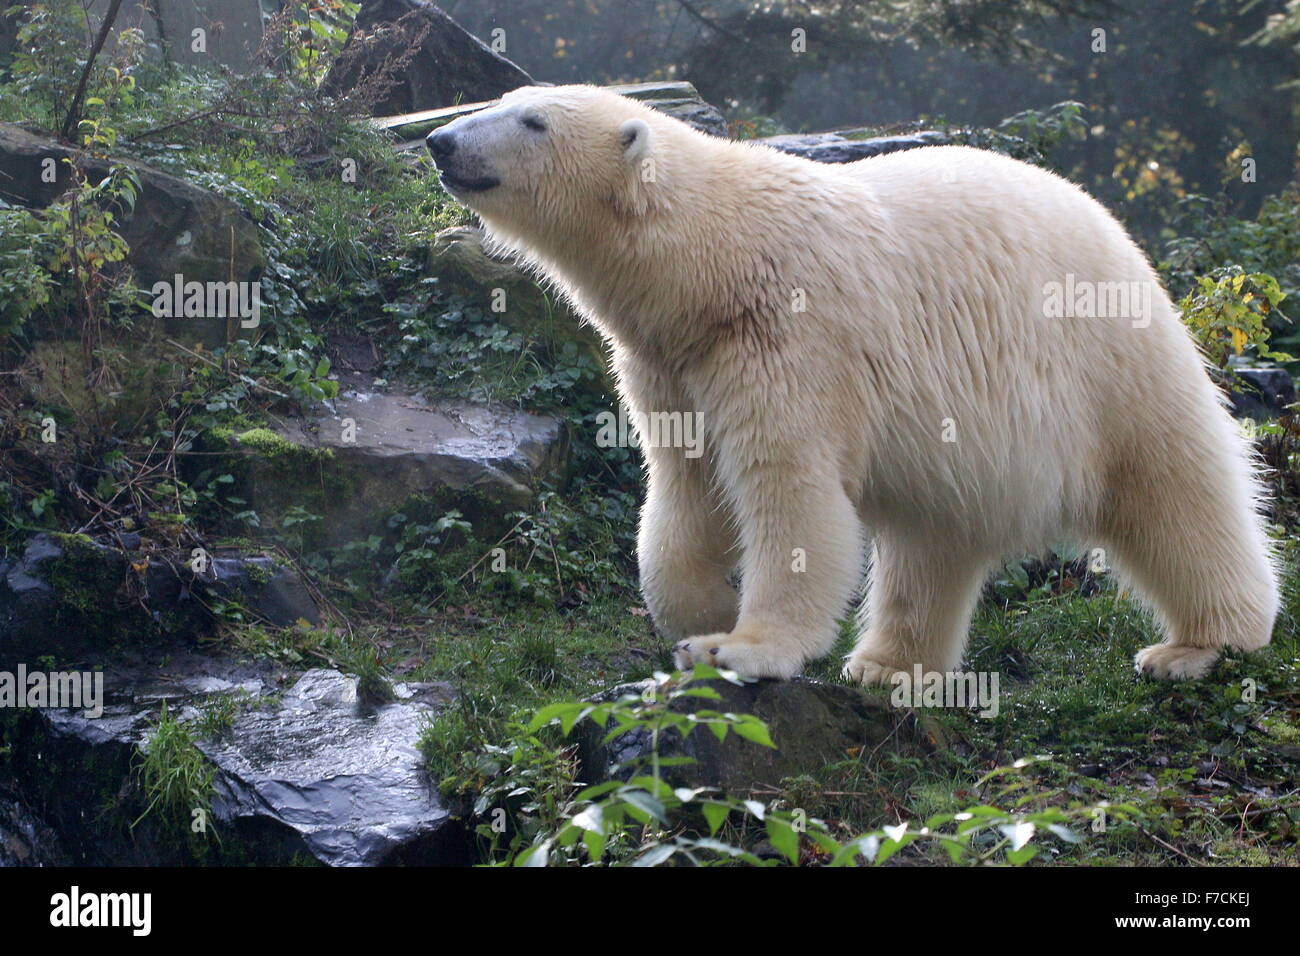 Mature polar bear (Ursus maritimus) sniffing, picking up a scent next to a small stream - Stock Image